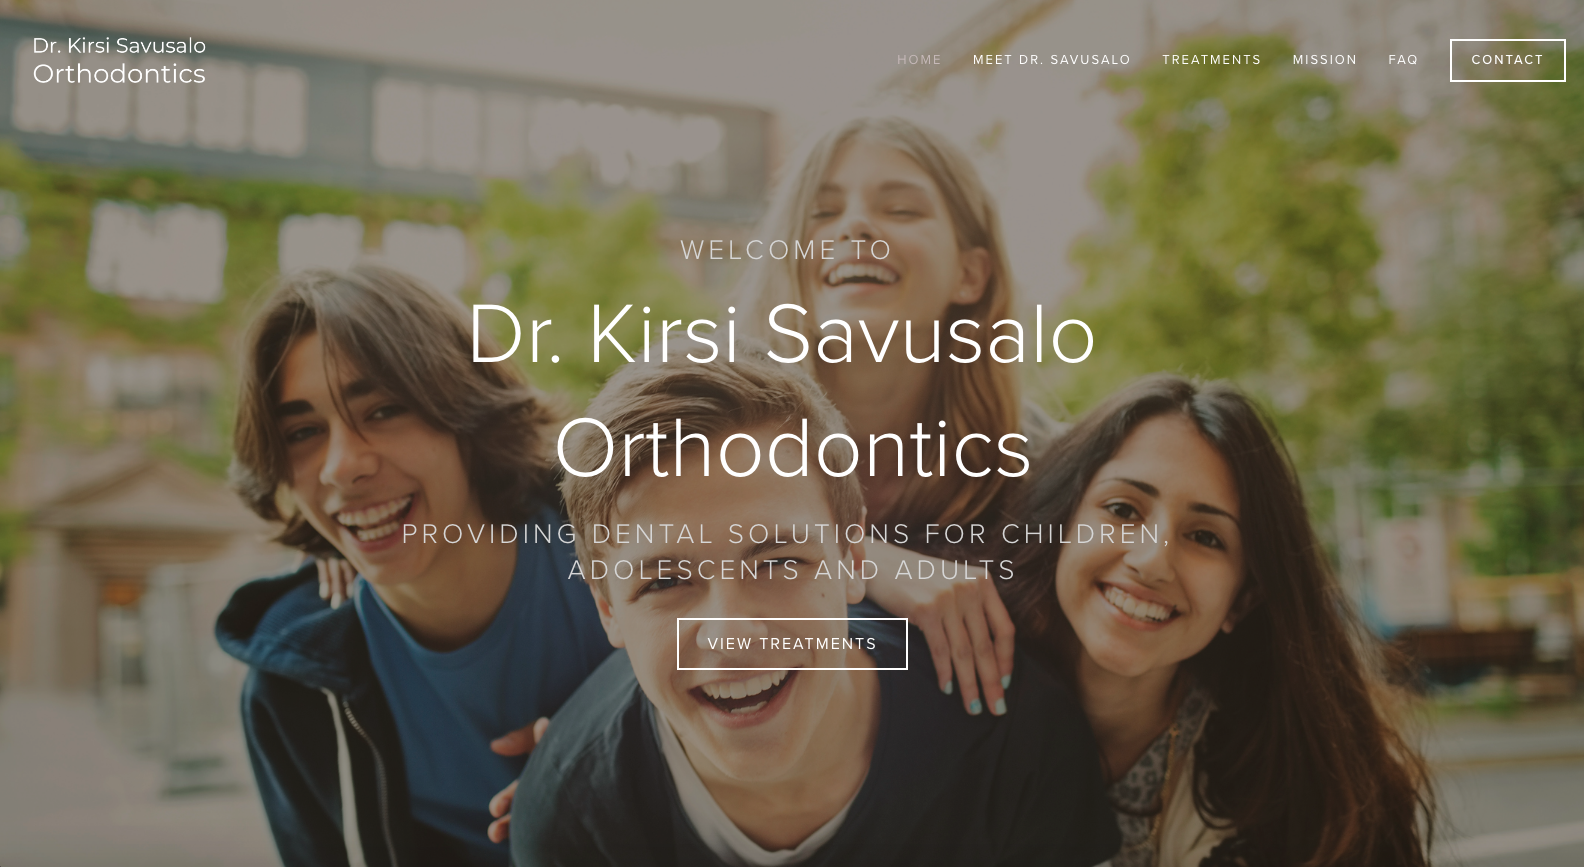 Squarespace web design for orthodontics